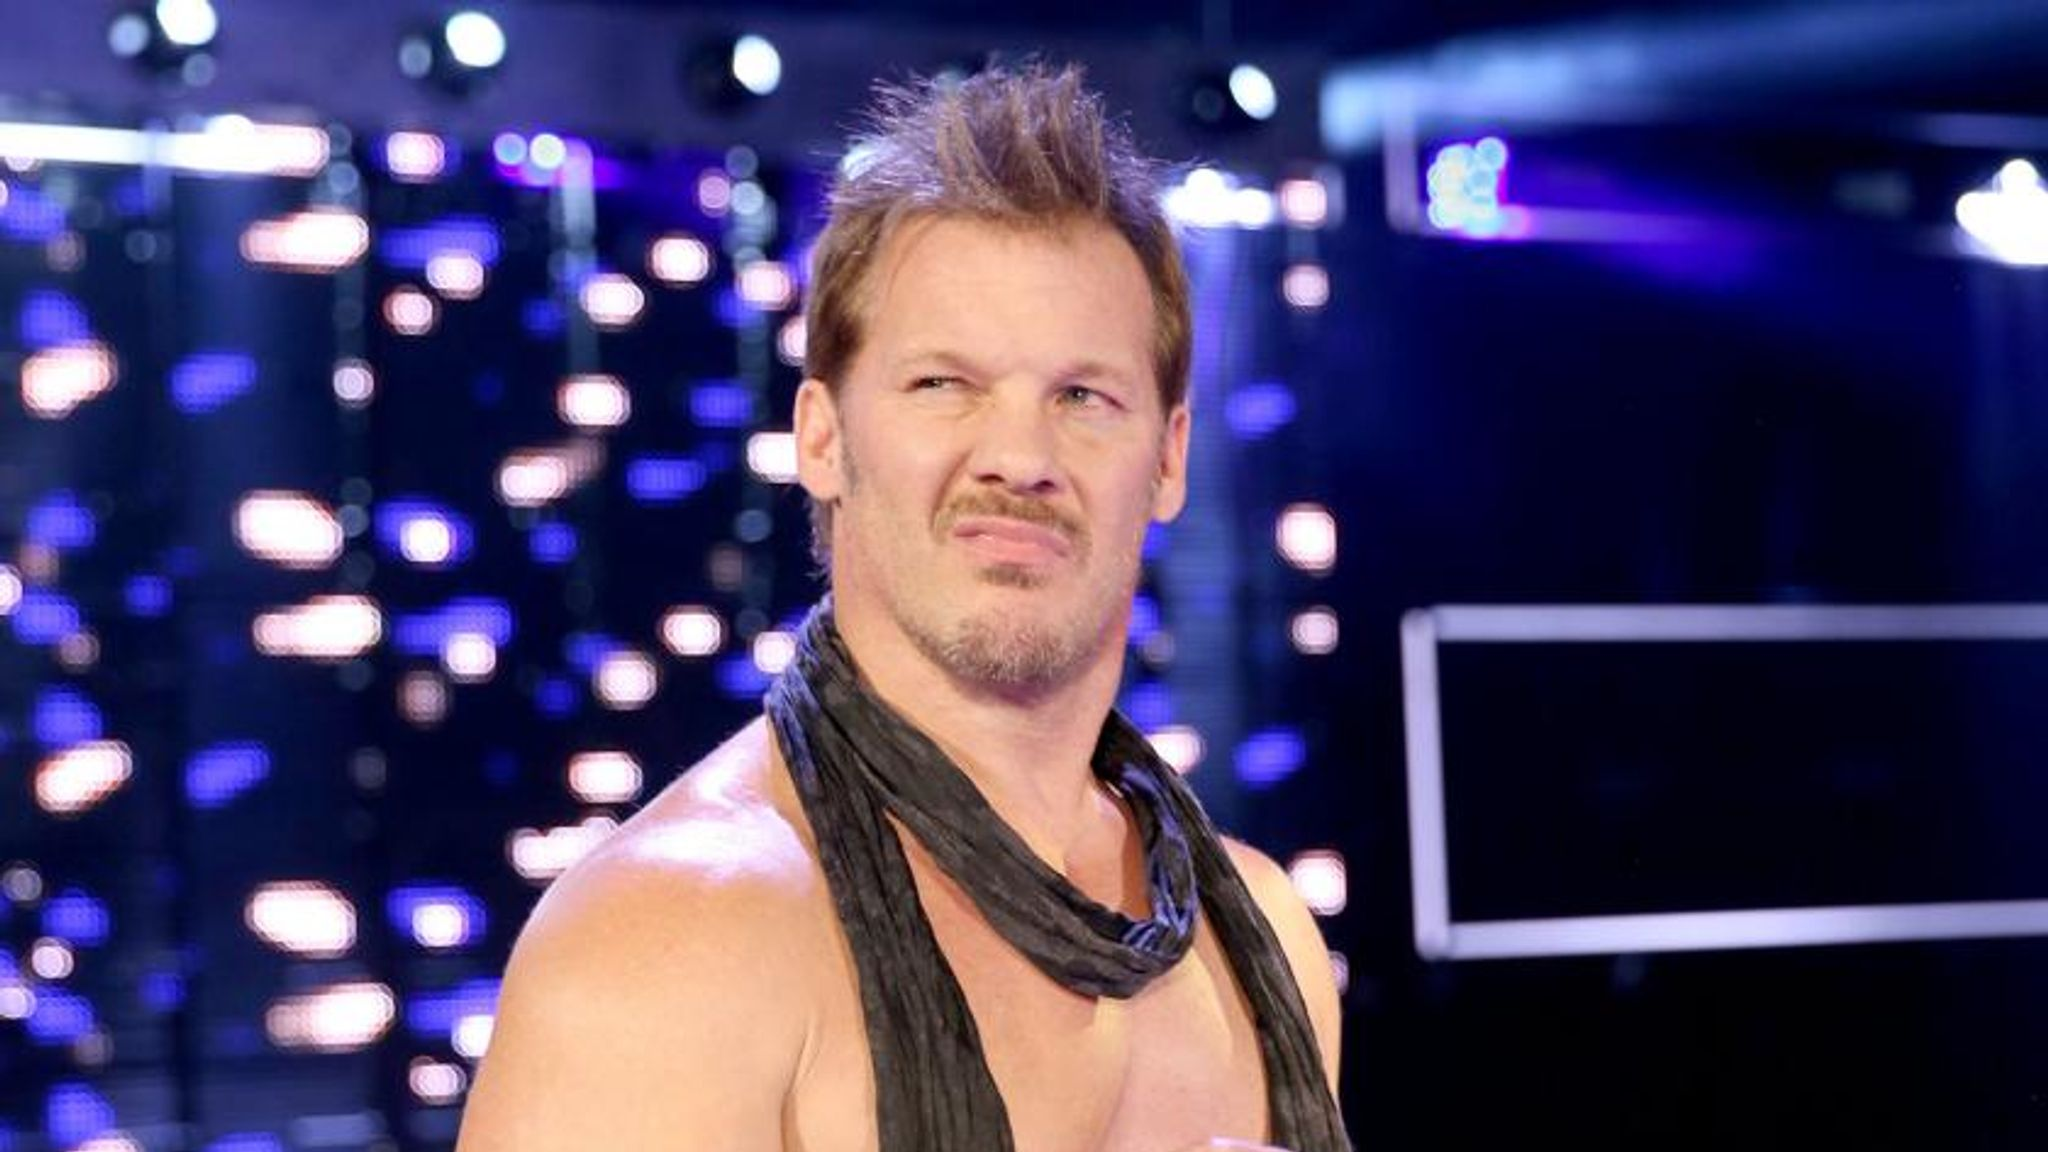 WWE QUIZ: How much do you know about Raw Superstar Chris Jericho?